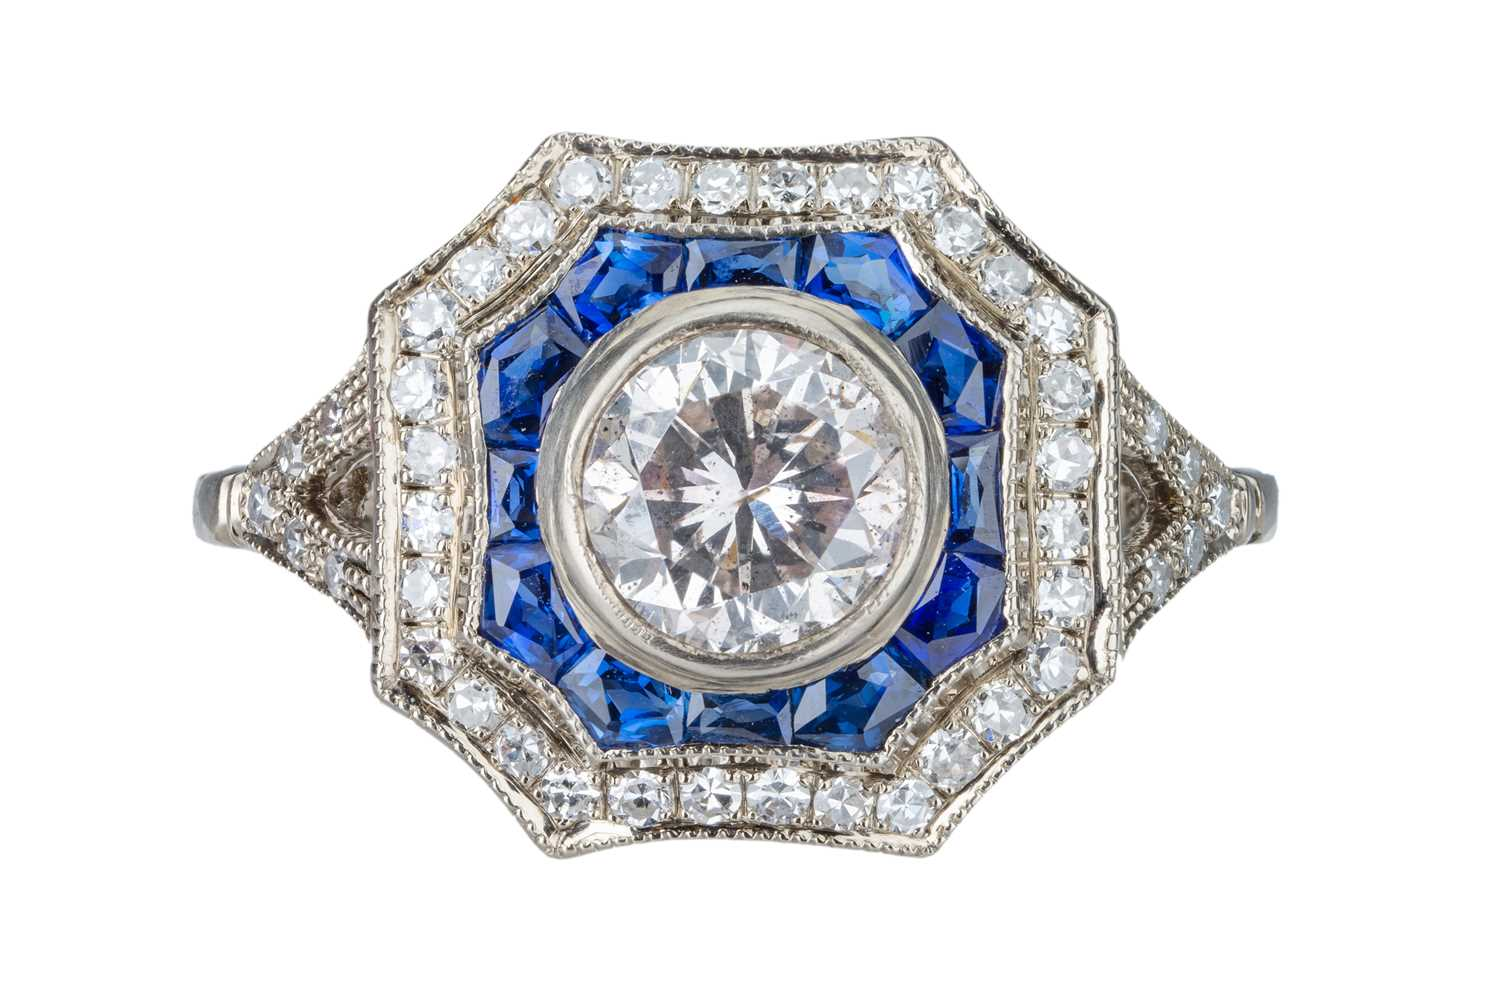 Lot 4 - An Art Deco diamond and sapphire target cluster ring.